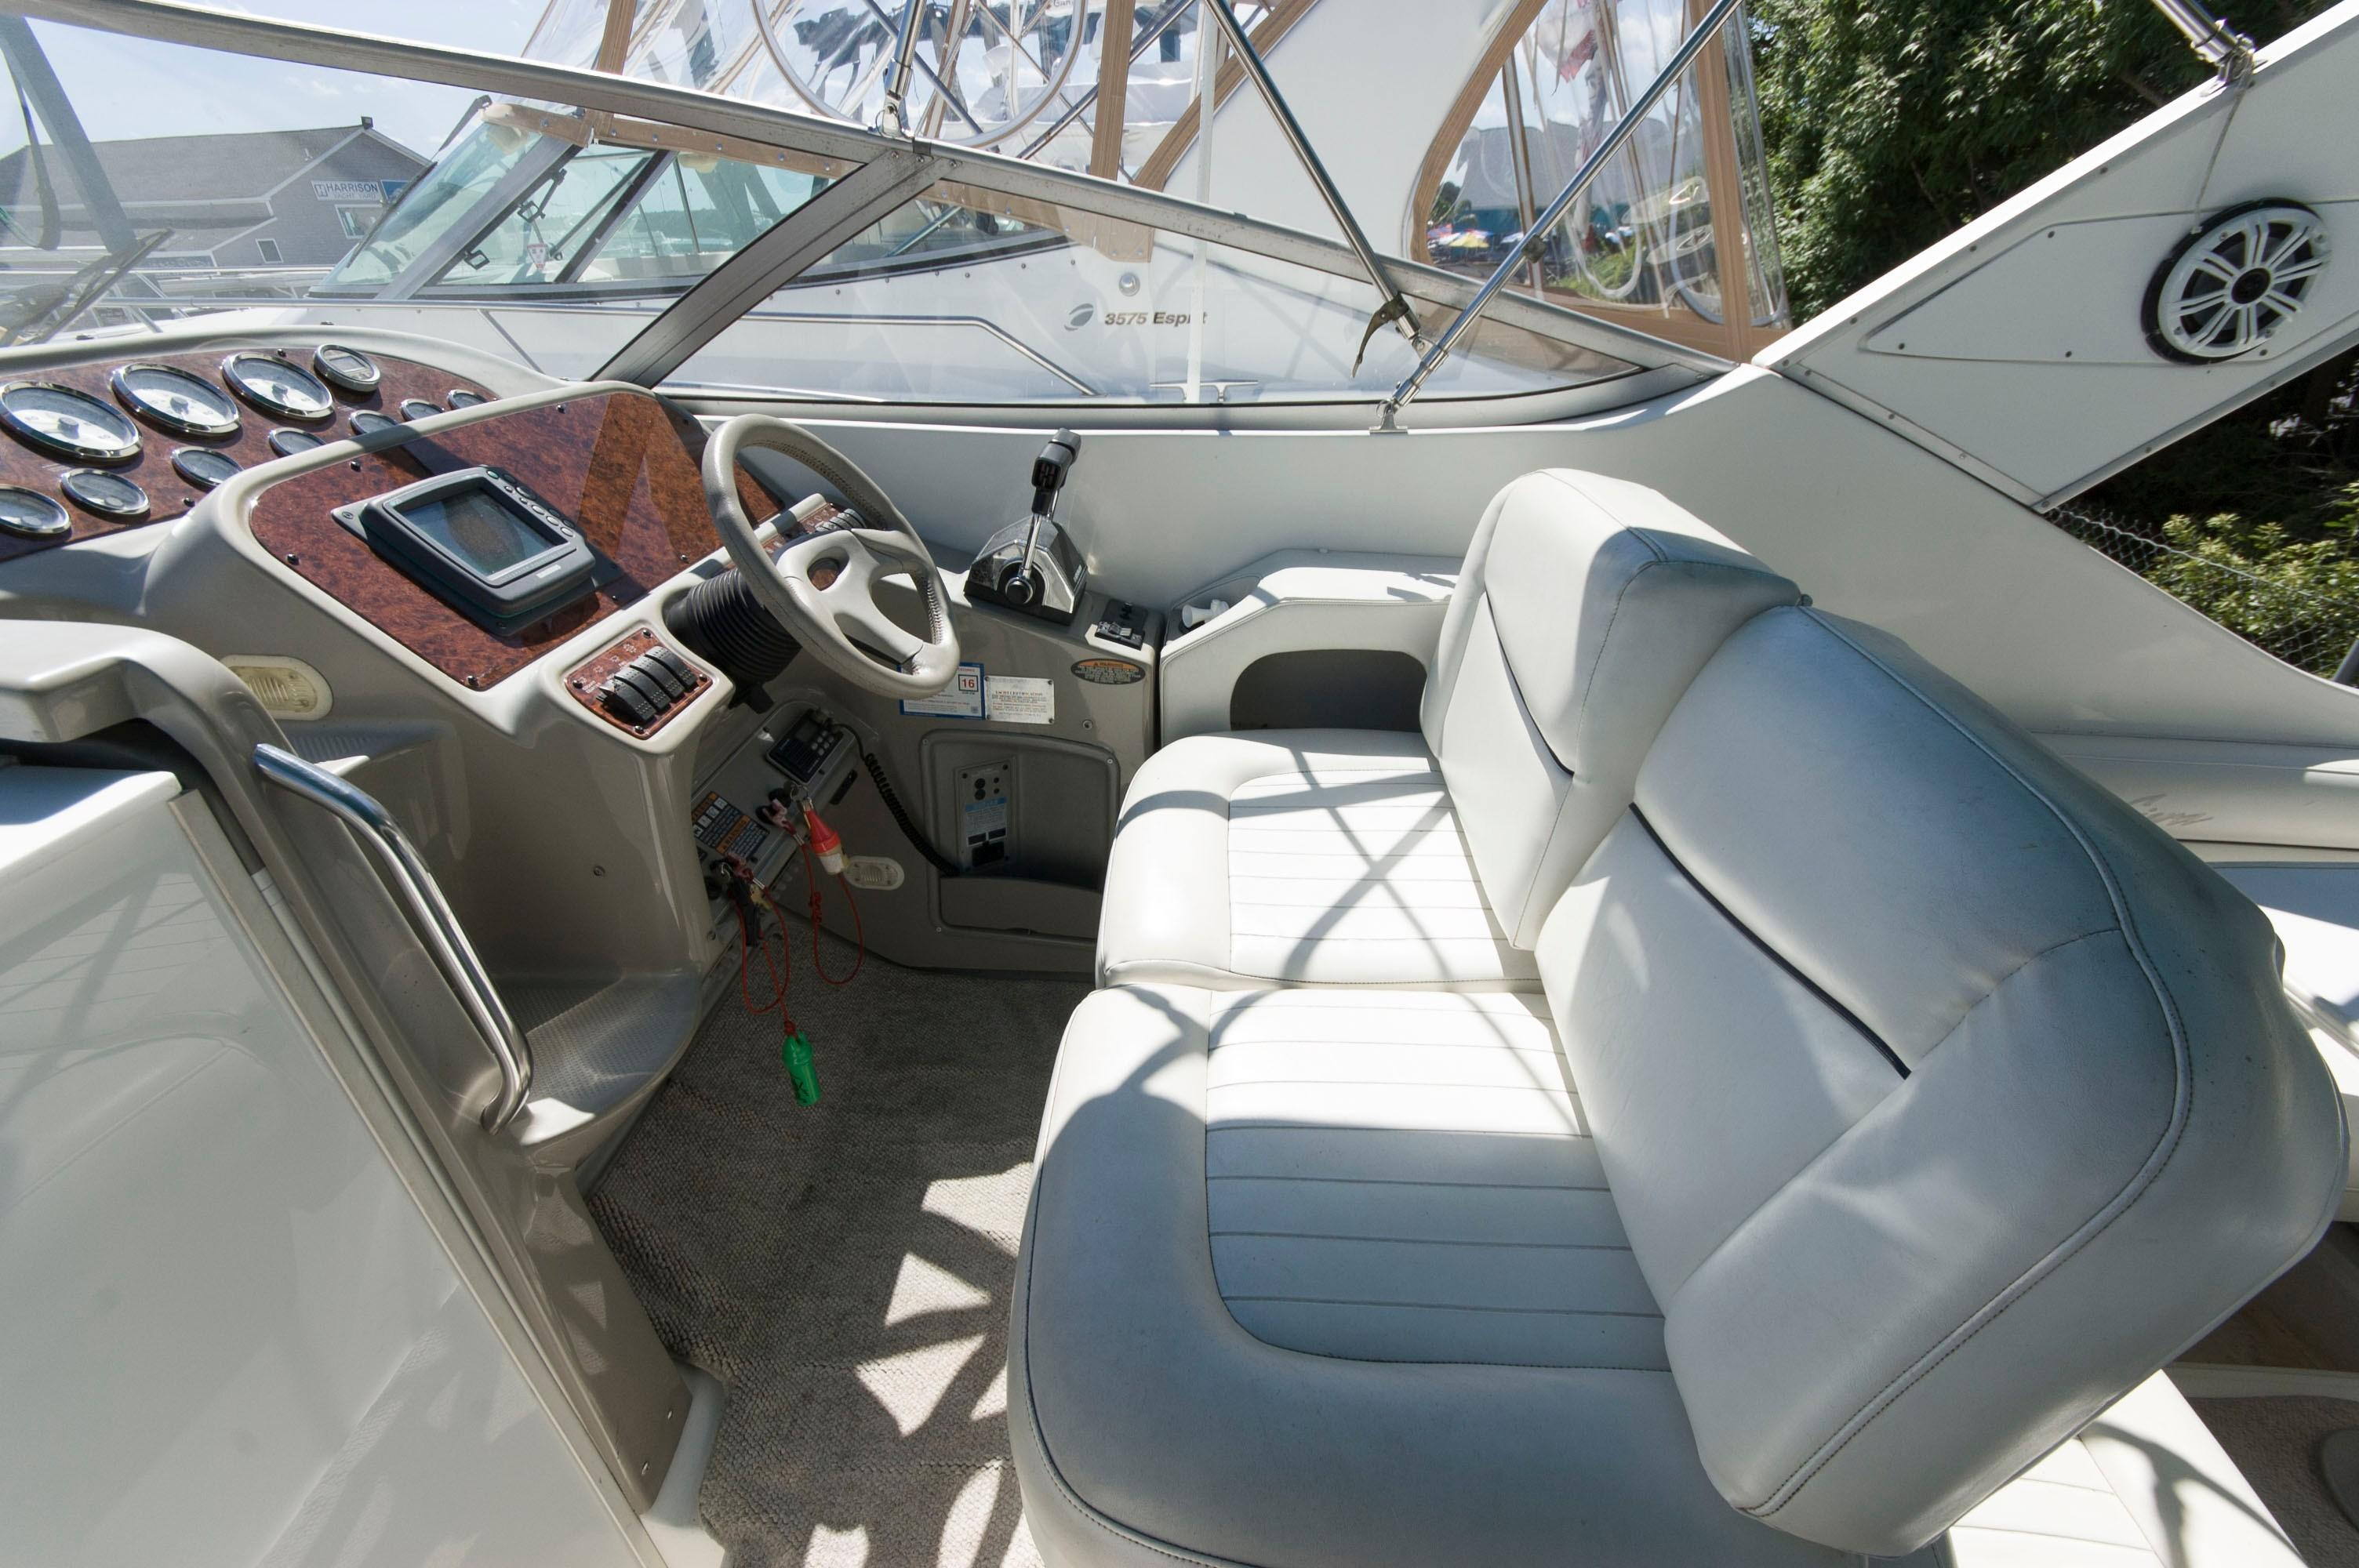 hight resolution of 1999 bayliner 3055 ciera power boat for sale www yachtworld com mako wiring diagram bayliner 3055 wiring diagram